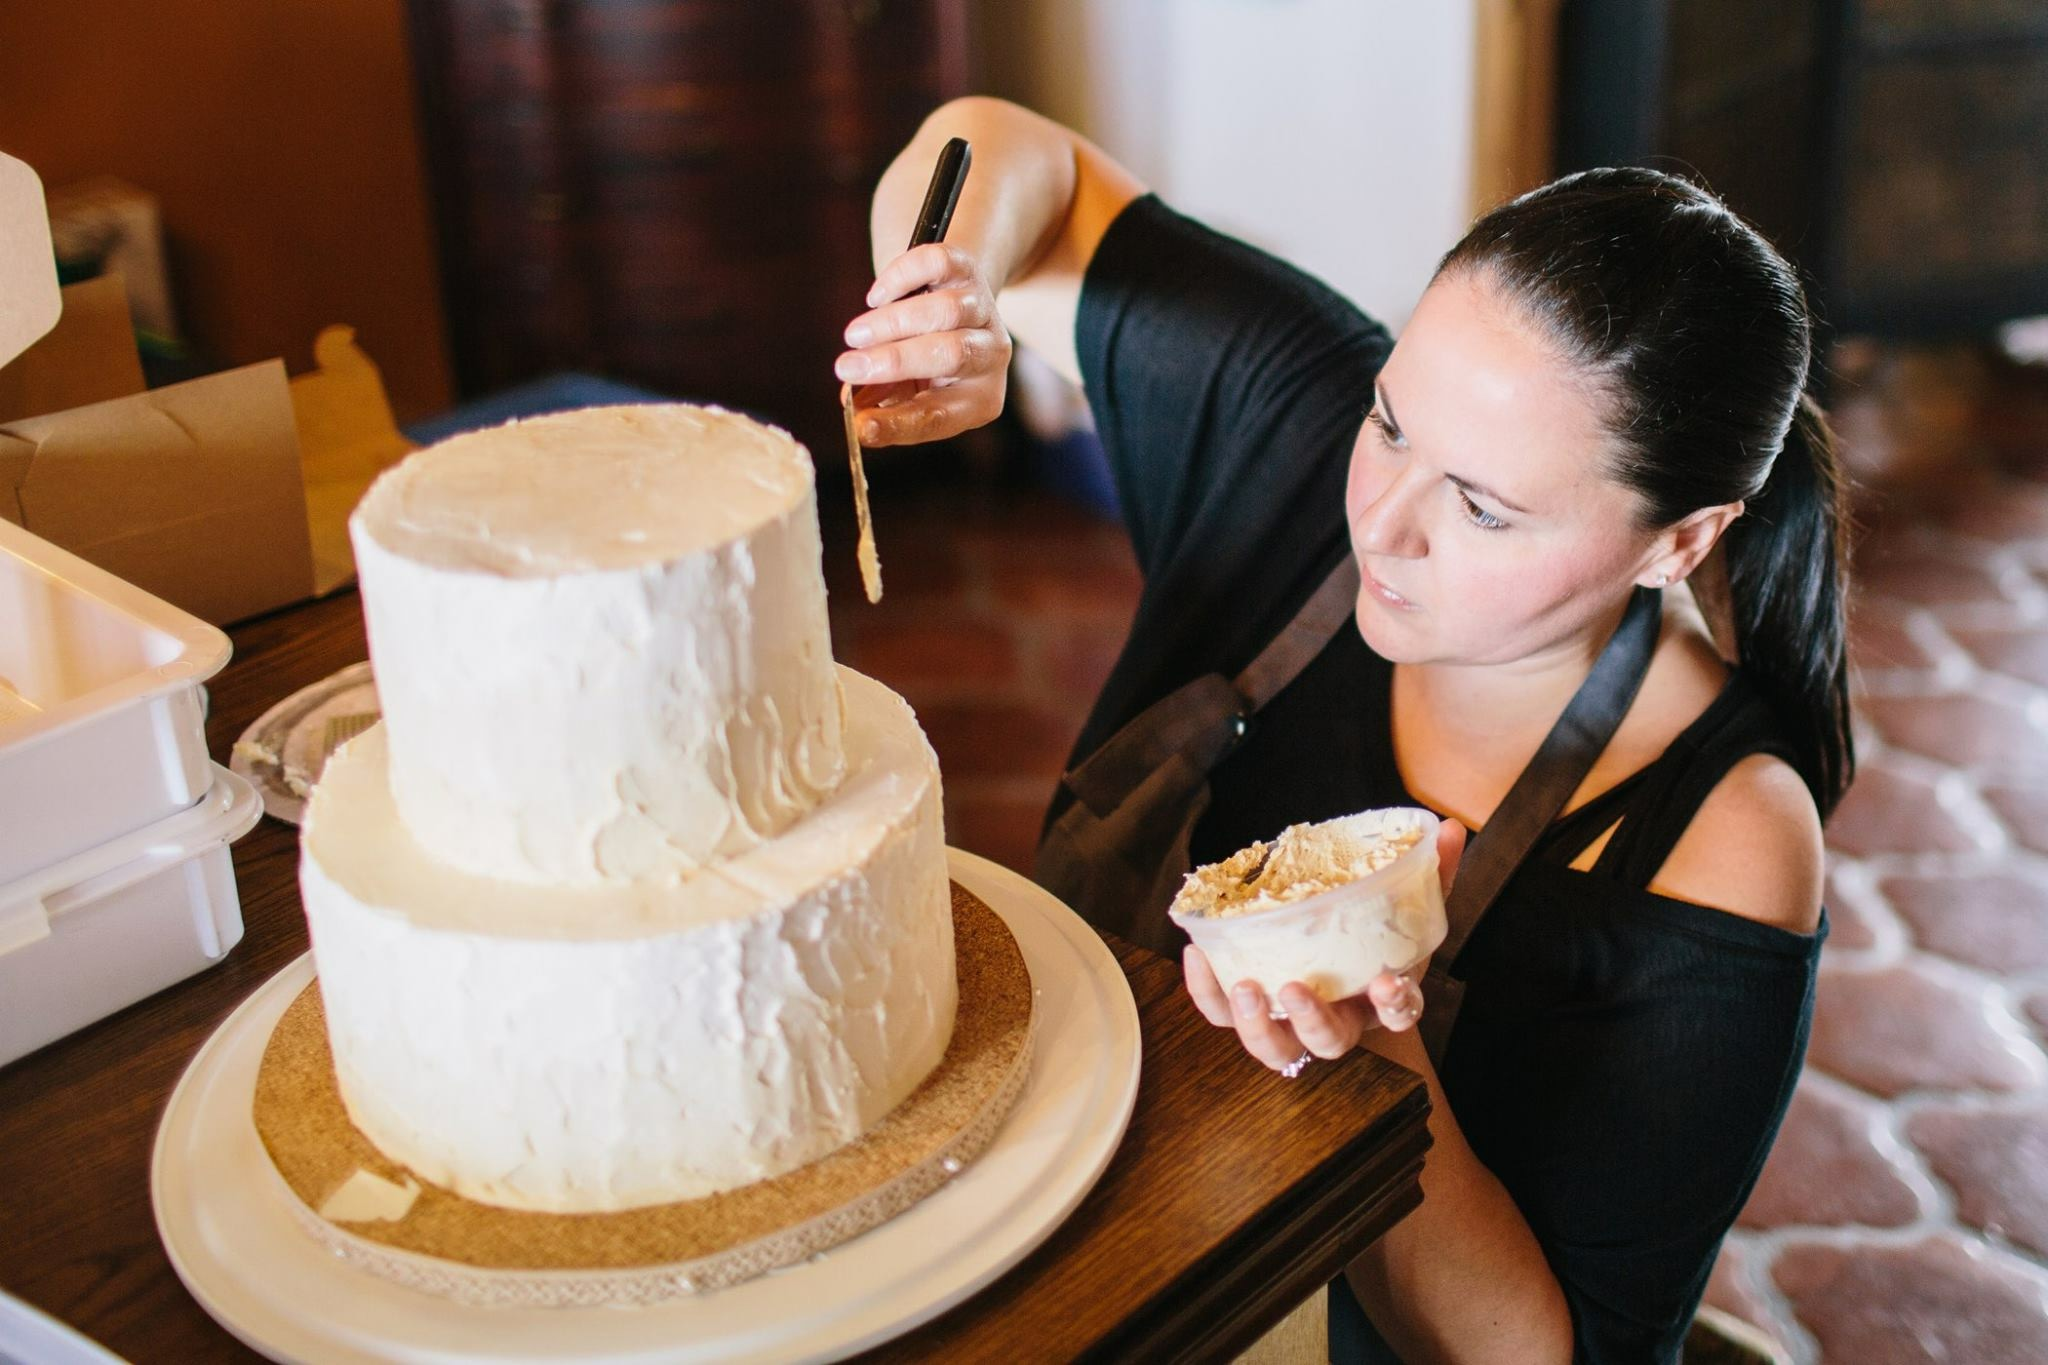 Annie Farrell | Owner & Cake Artist { photo by Jay C Winter }